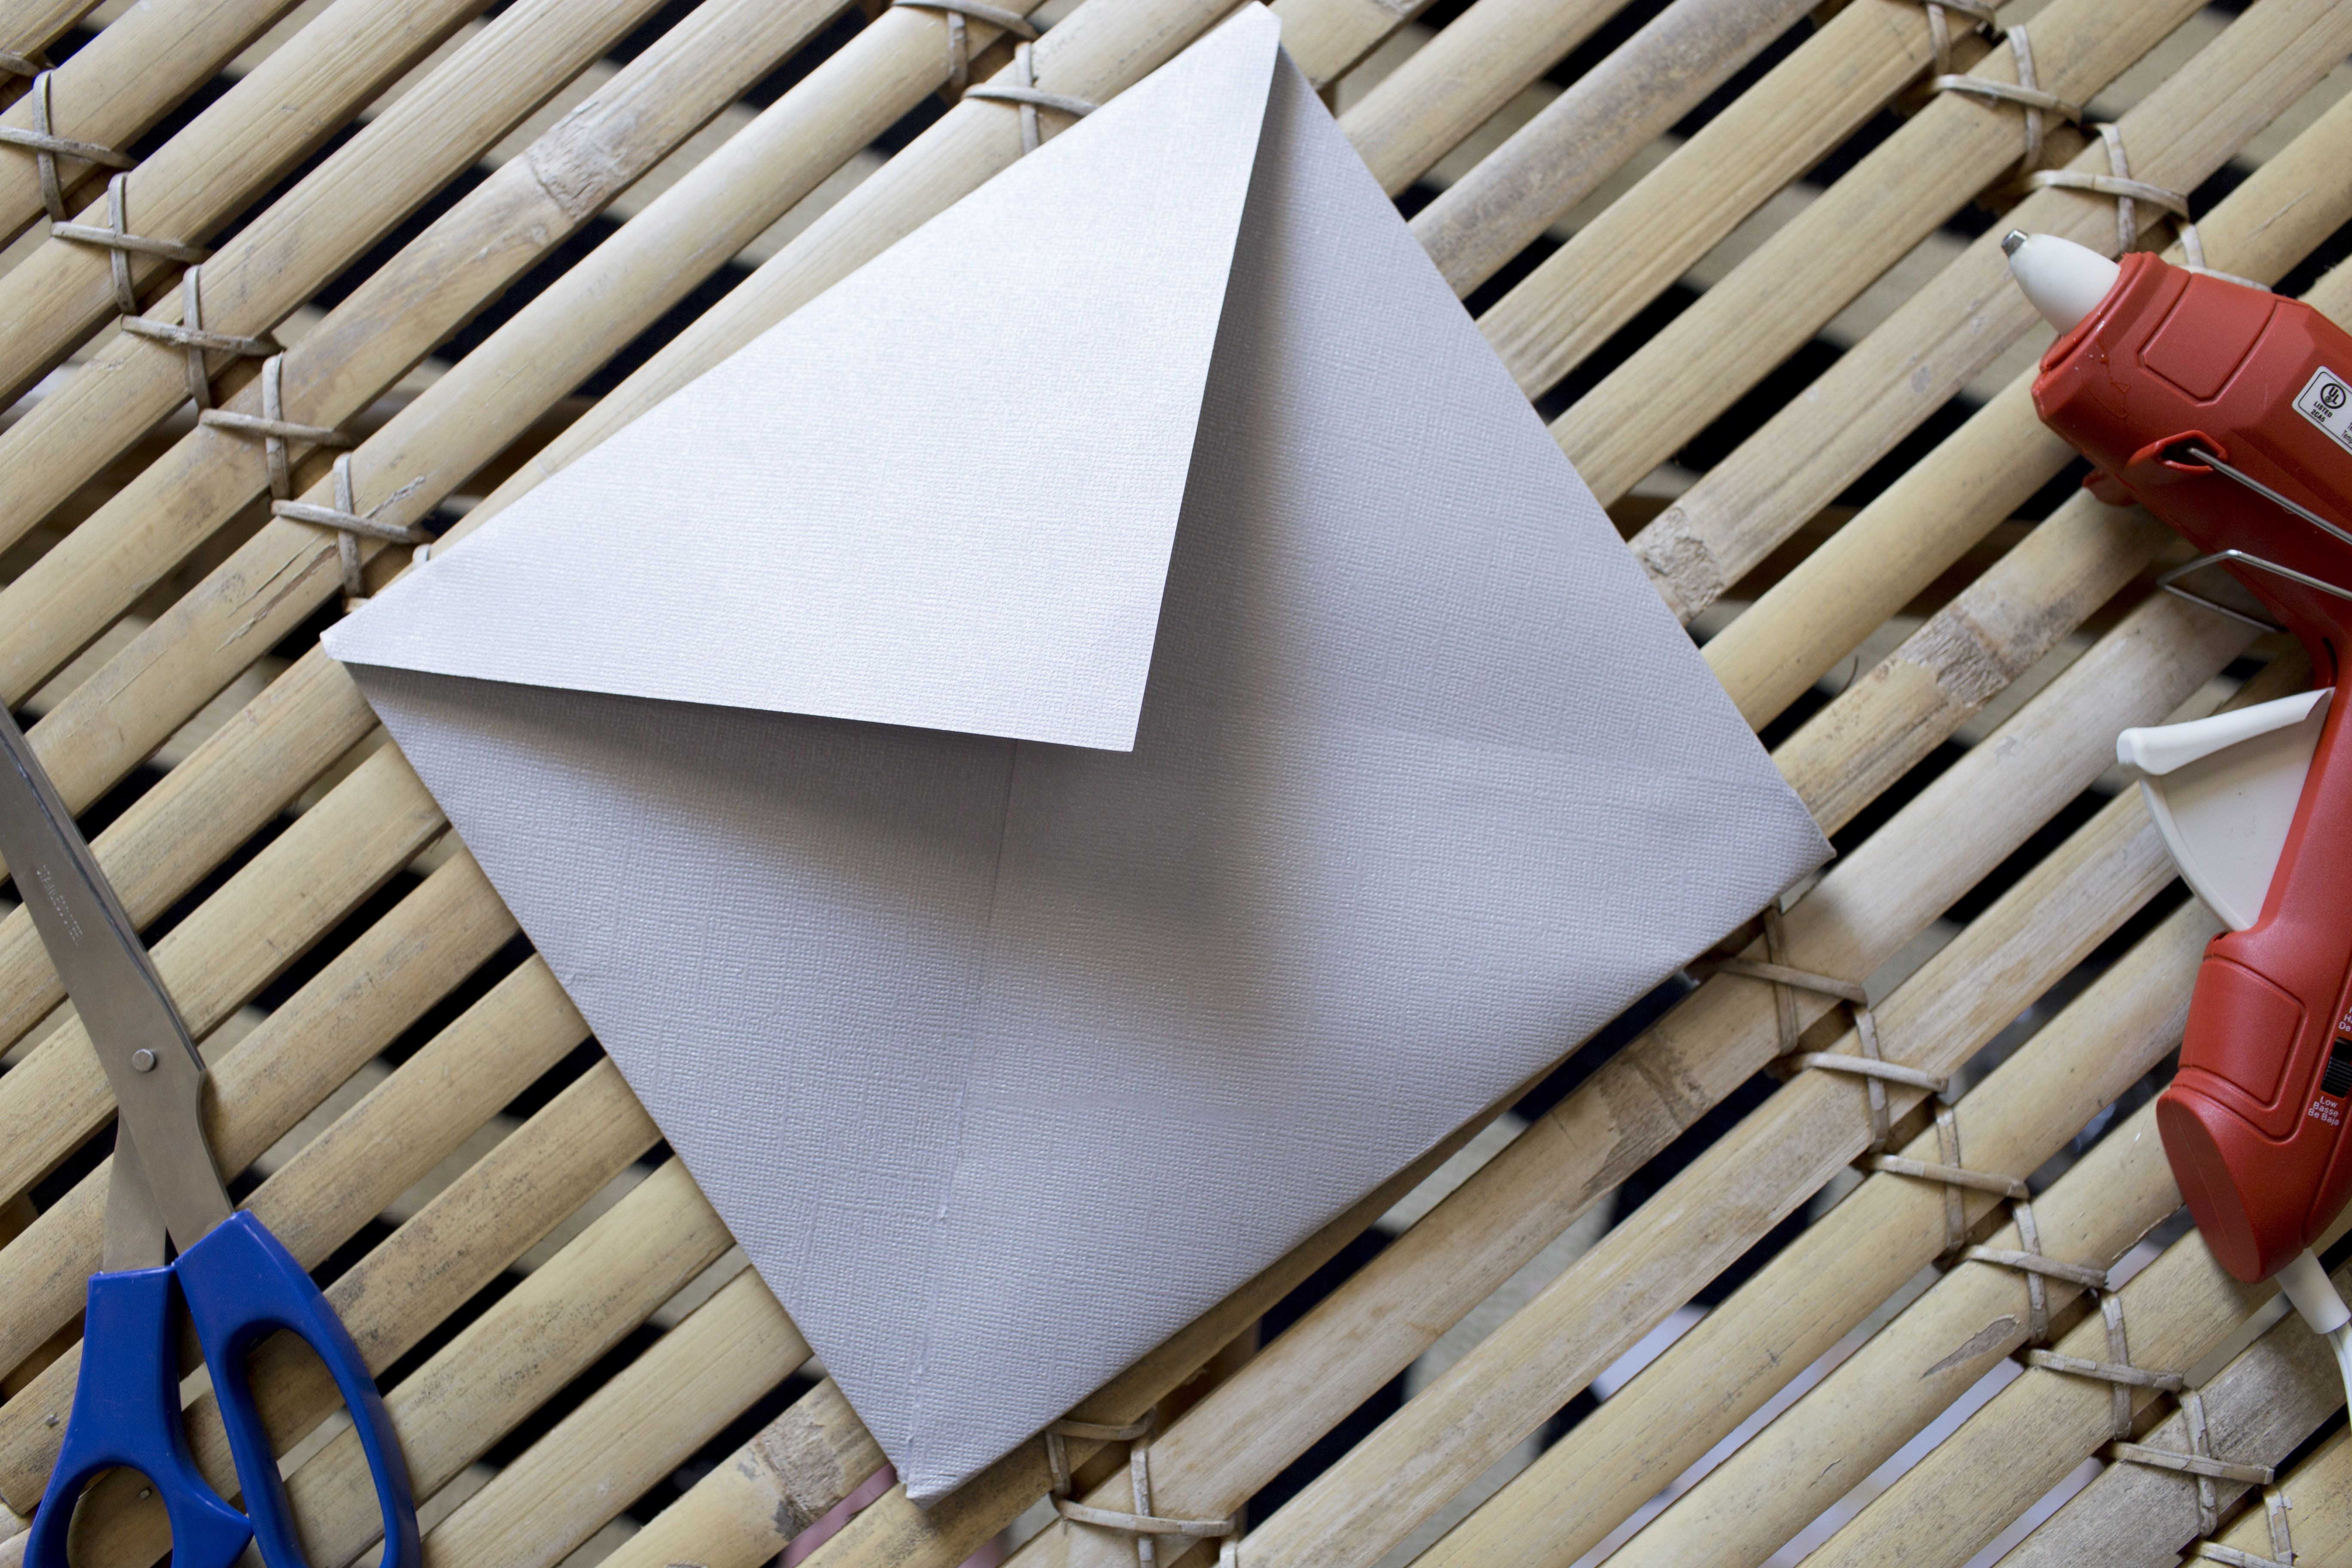 How to Make Your Own Paper Envelope